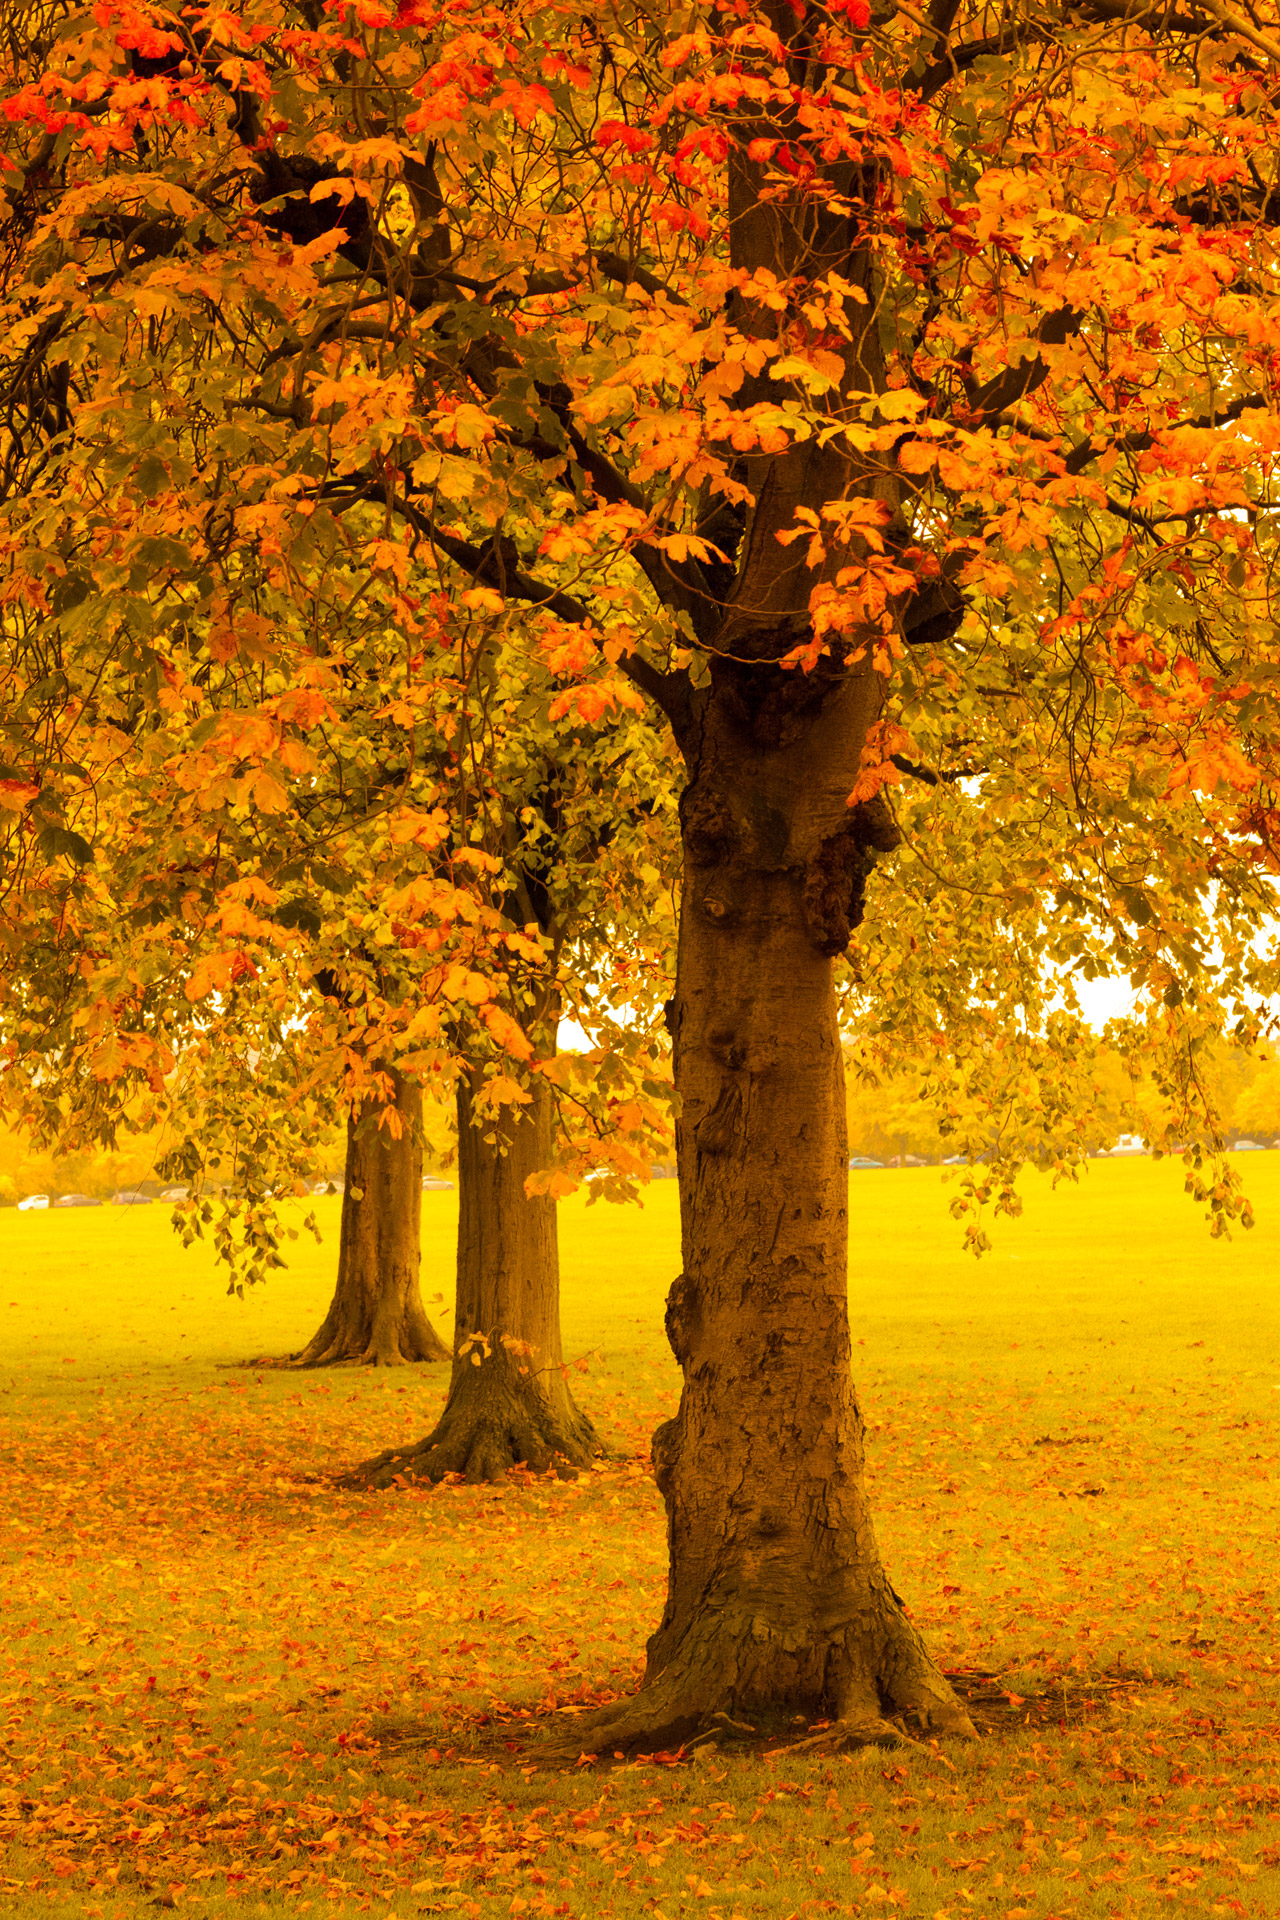 Autumn Trees In Park Free Stock Photo - Public Domain Pictures